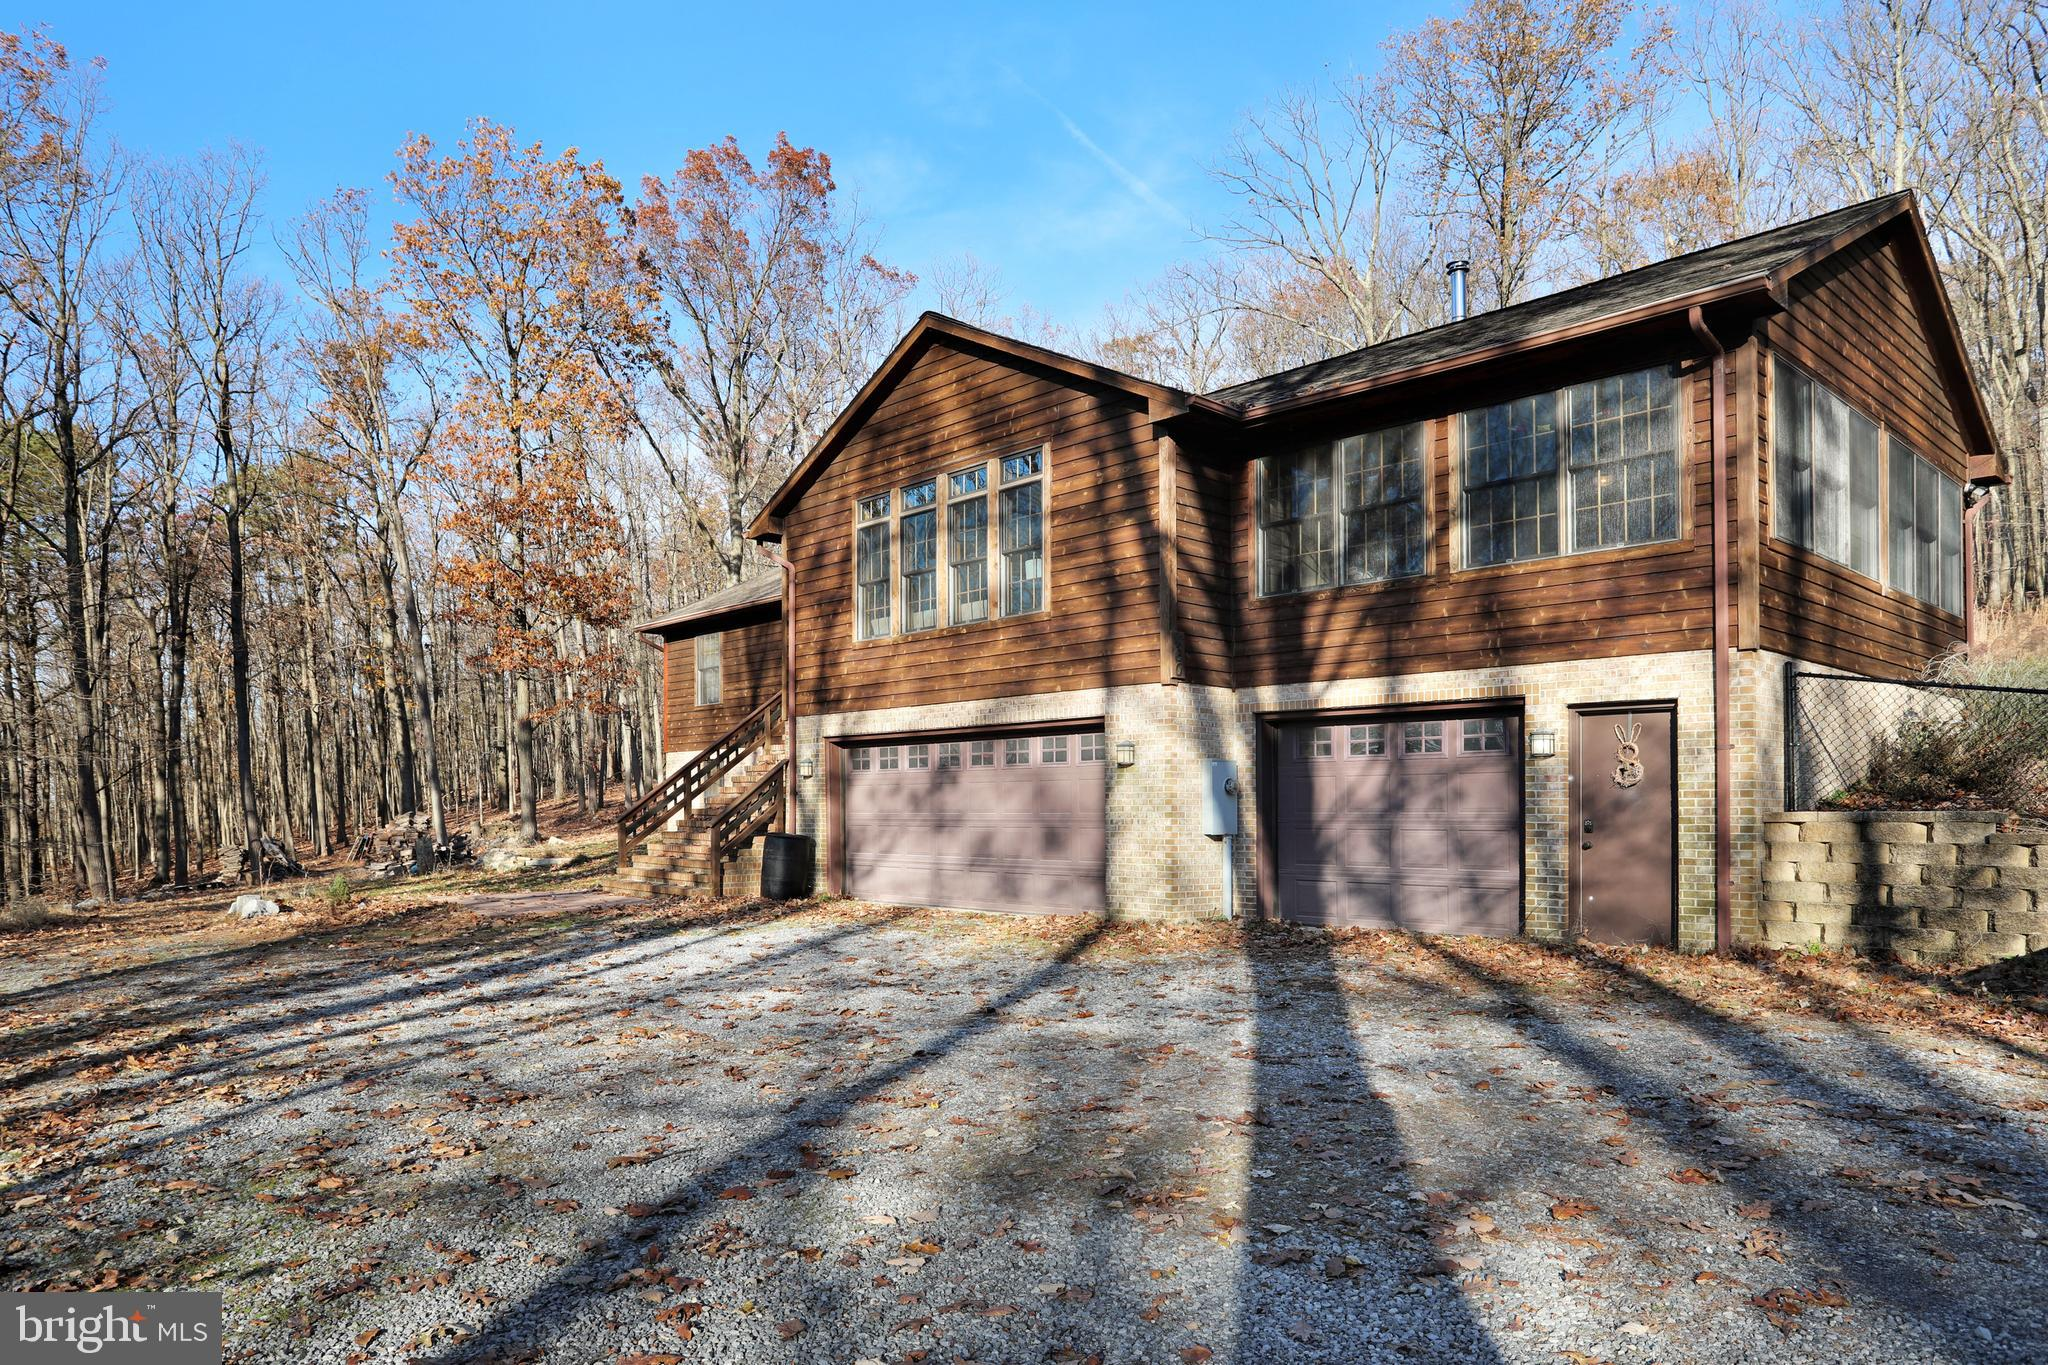 460 AERIE Ln, Harpers Ferry, WV, 25425